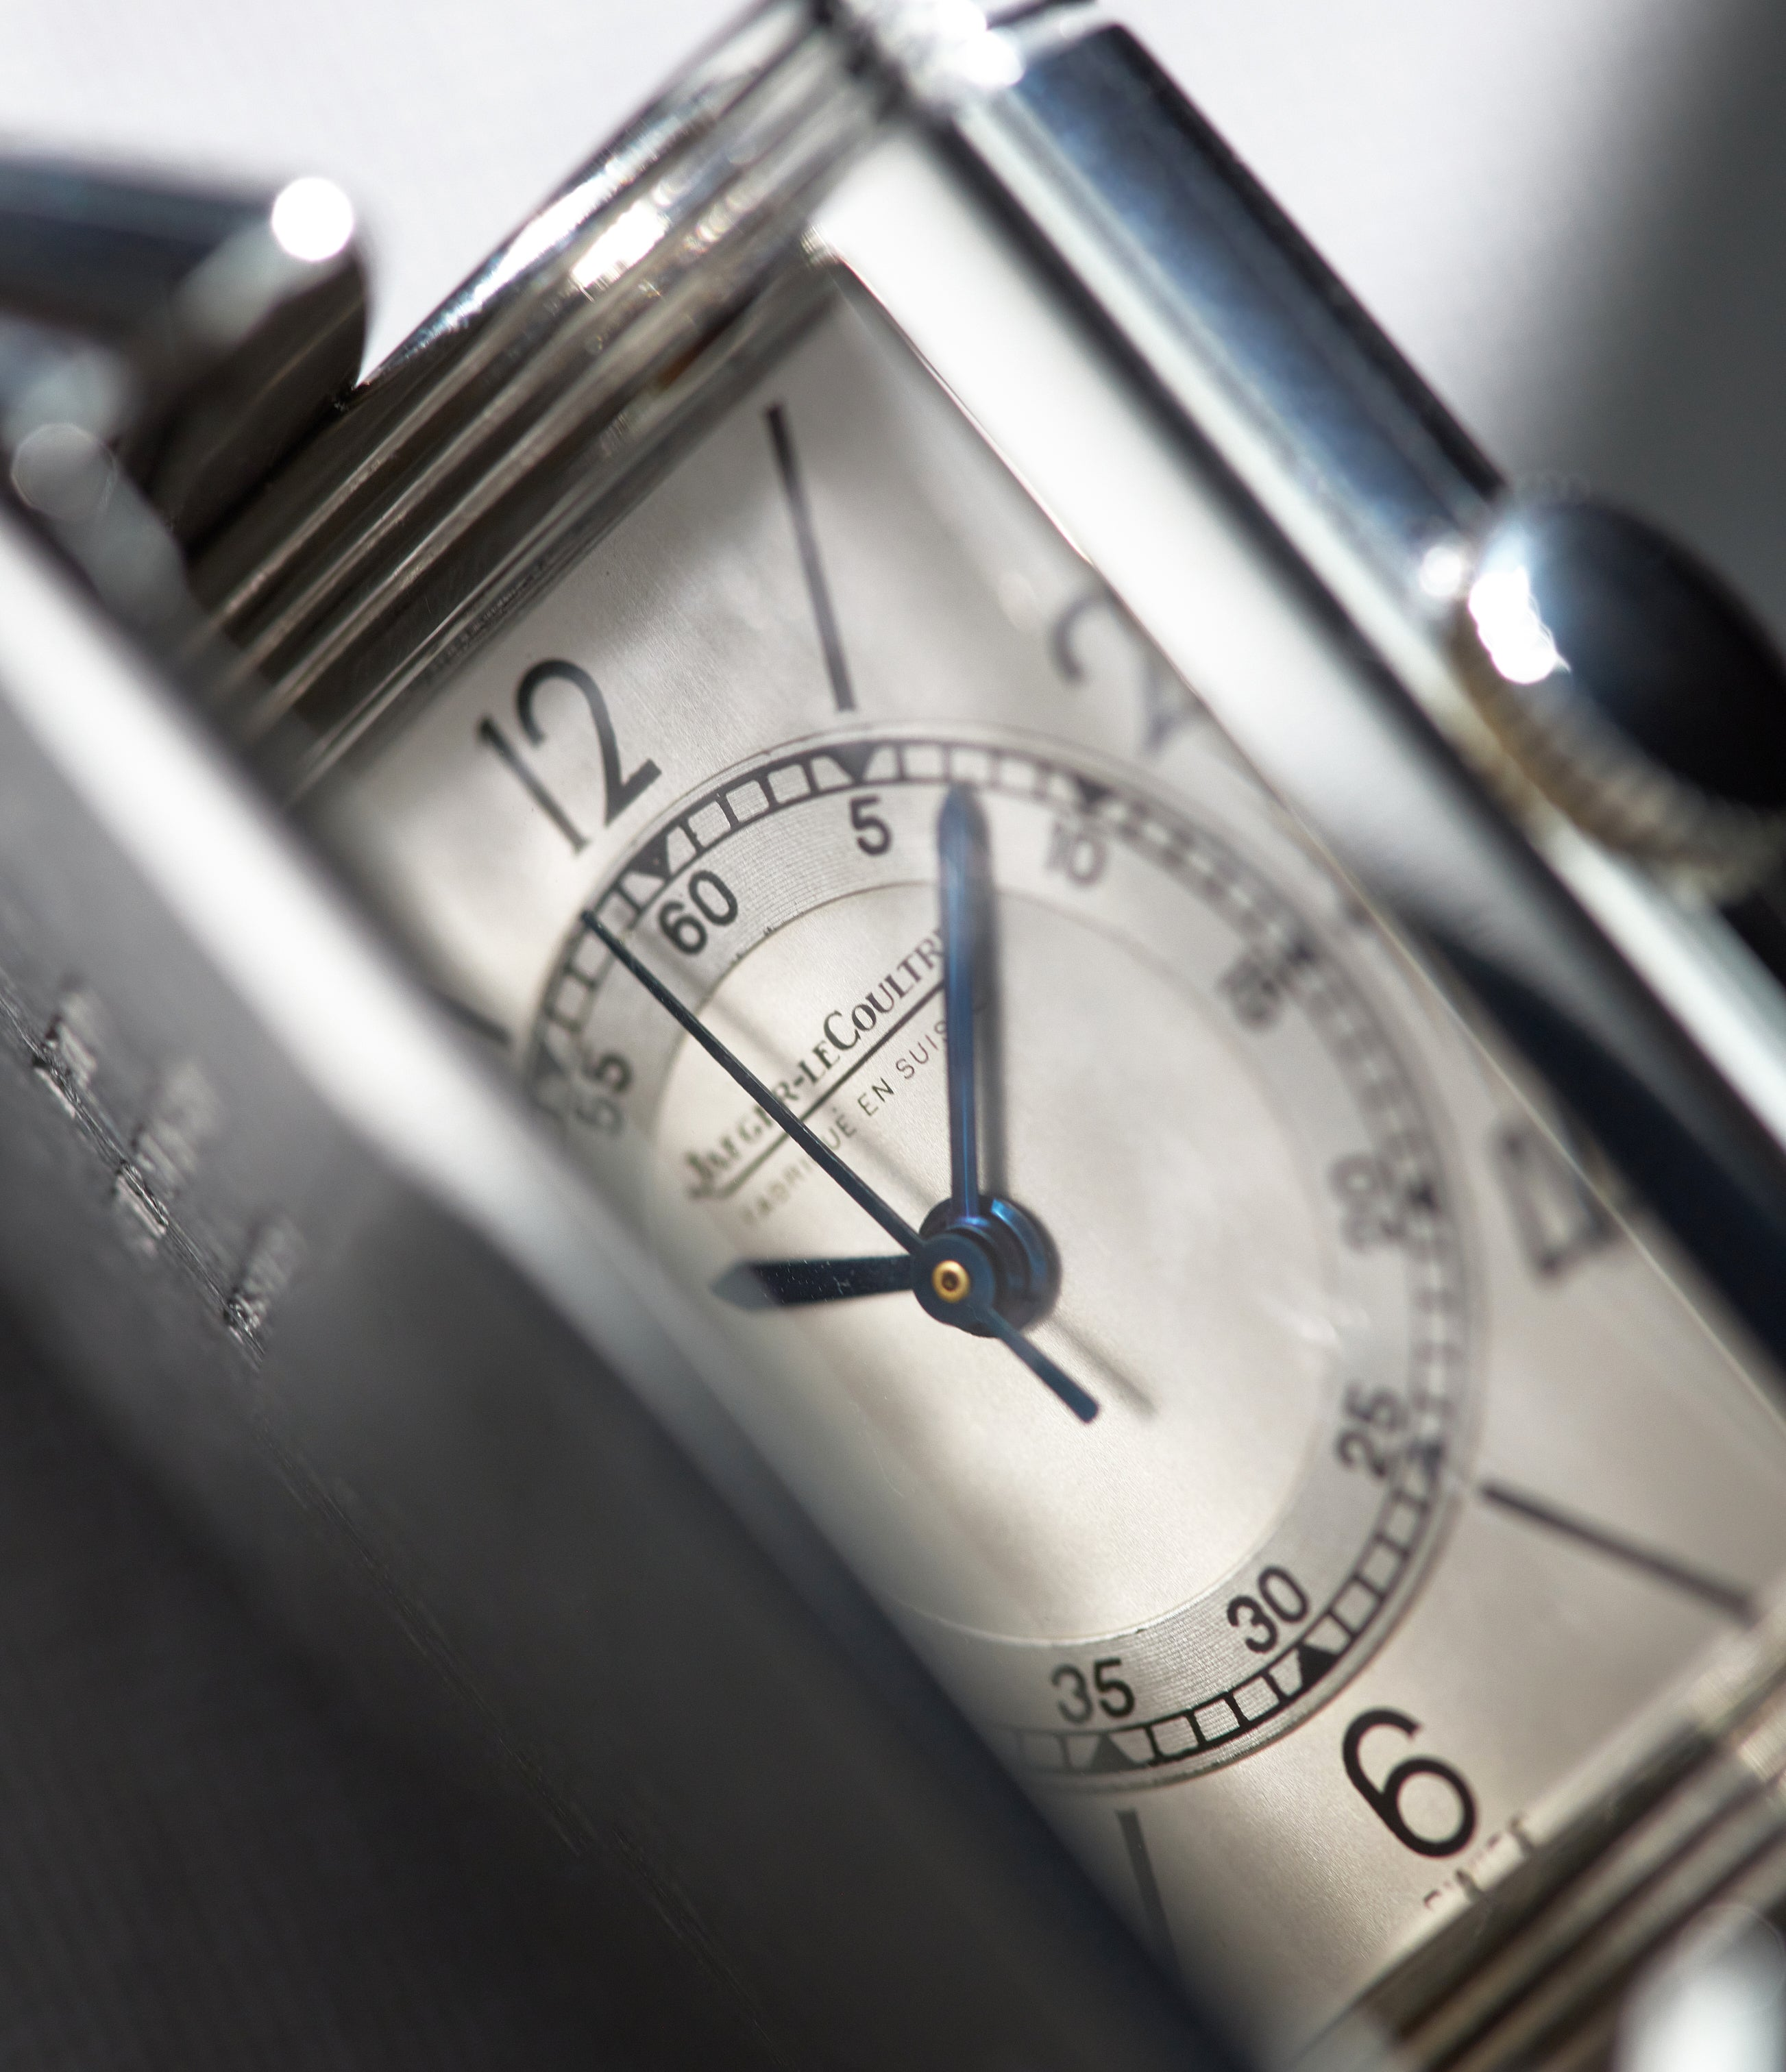 White dial Jaeger-LeCoultre Reverso from 1933 closing in The Flippin' History of the Reverso for A Collected Man